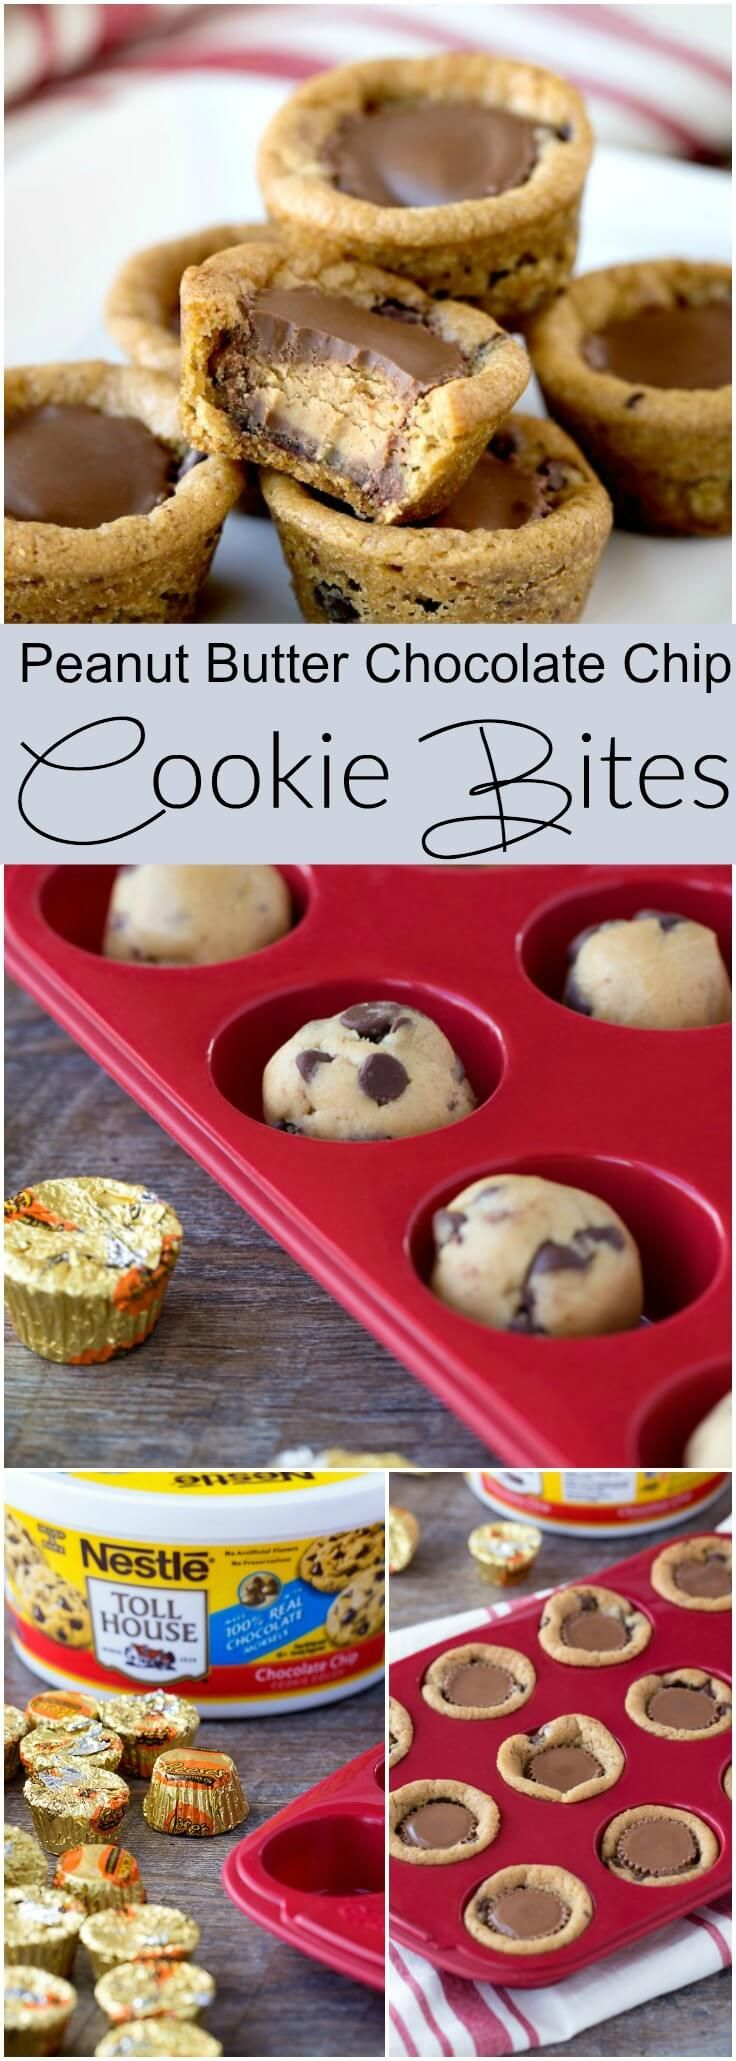 Reese's Chocolate Chip Cookie Bites! You only need TWO ingredients and they take 10 minutes start to finish. World's easiest dessert!